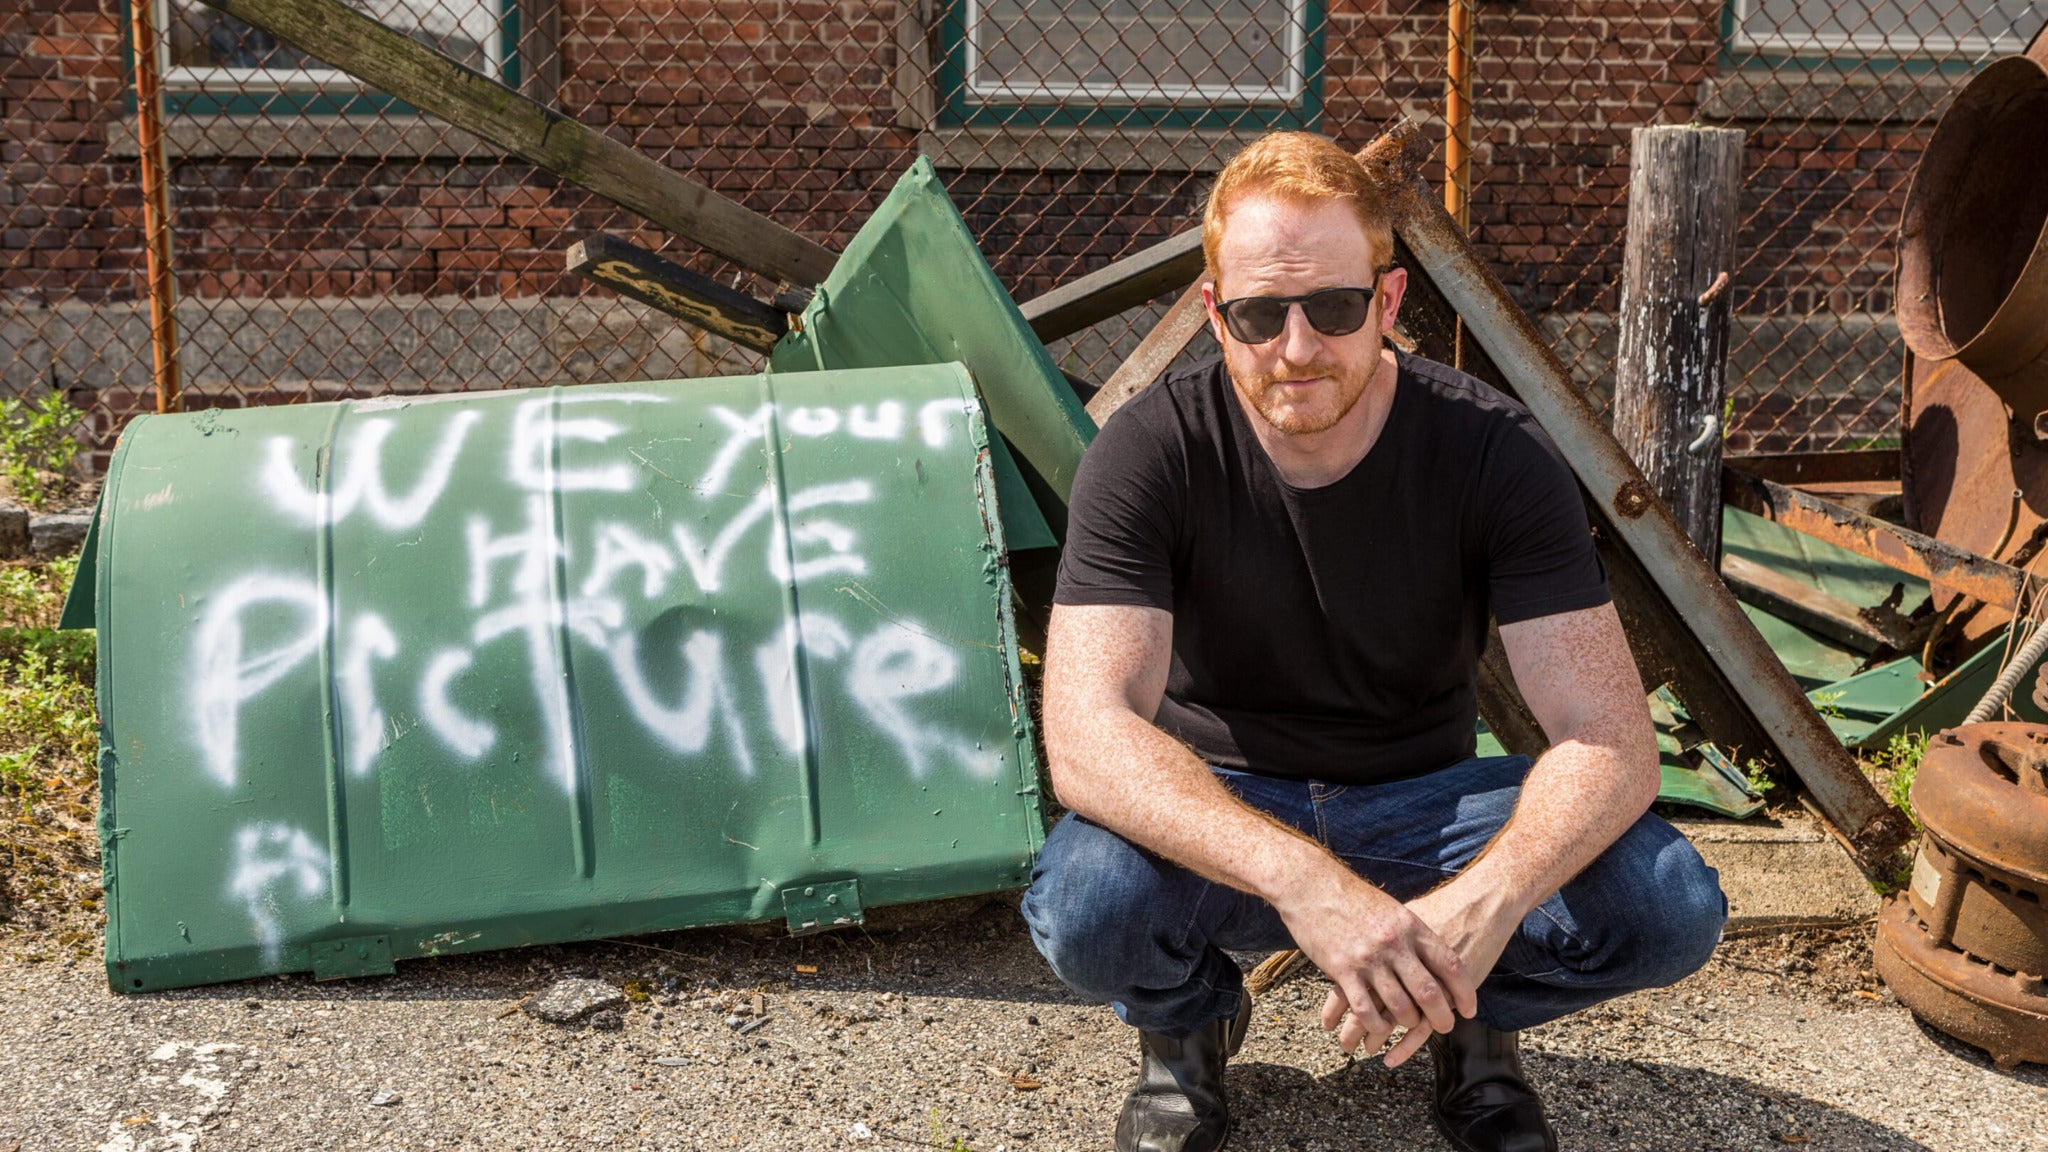 Steve Hofstetter - Early Show at Baltimore Soundstage